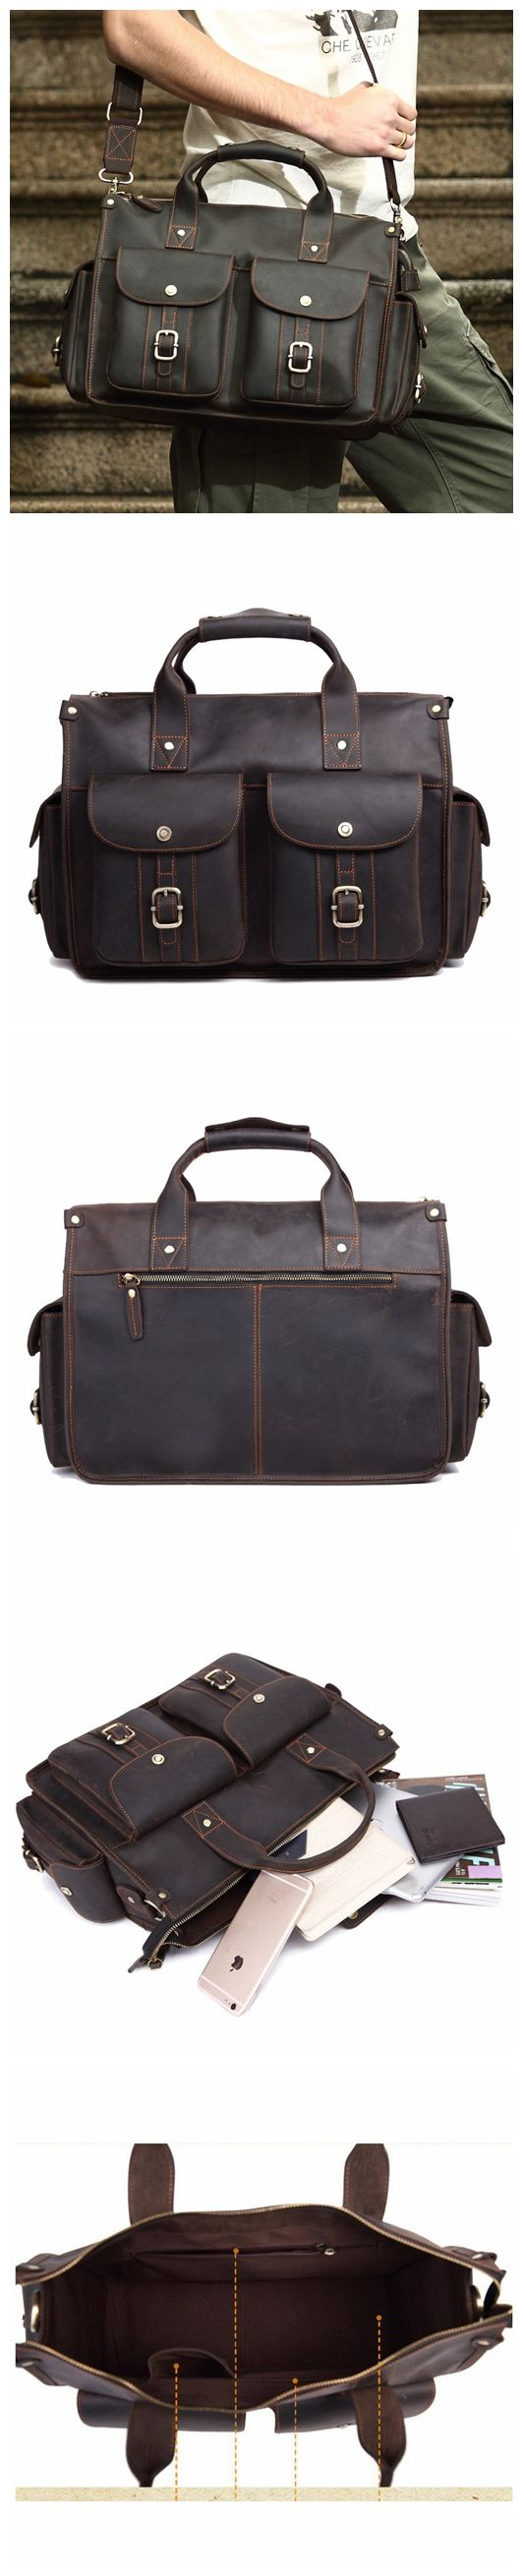 ROCKCOW Handcrafted Rustic Leather Briefcase, Messenger Bag, Laptop Bag, Men's Handbag 8649